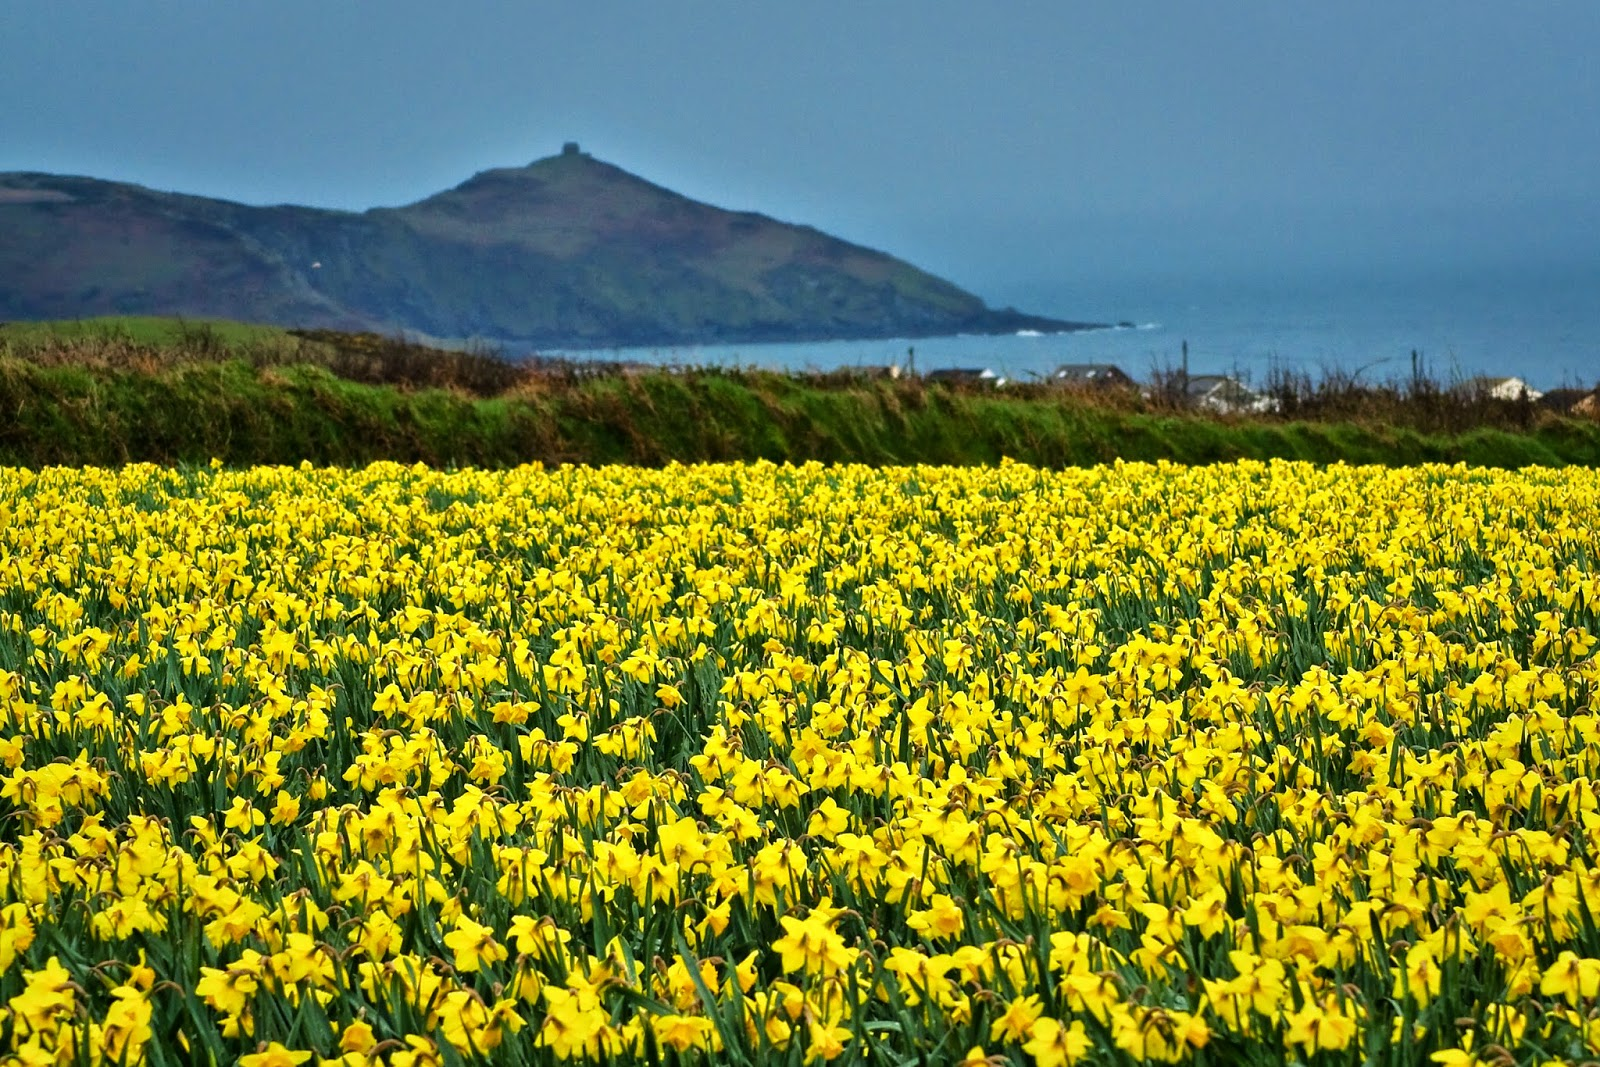 Daffodils in Cornwall